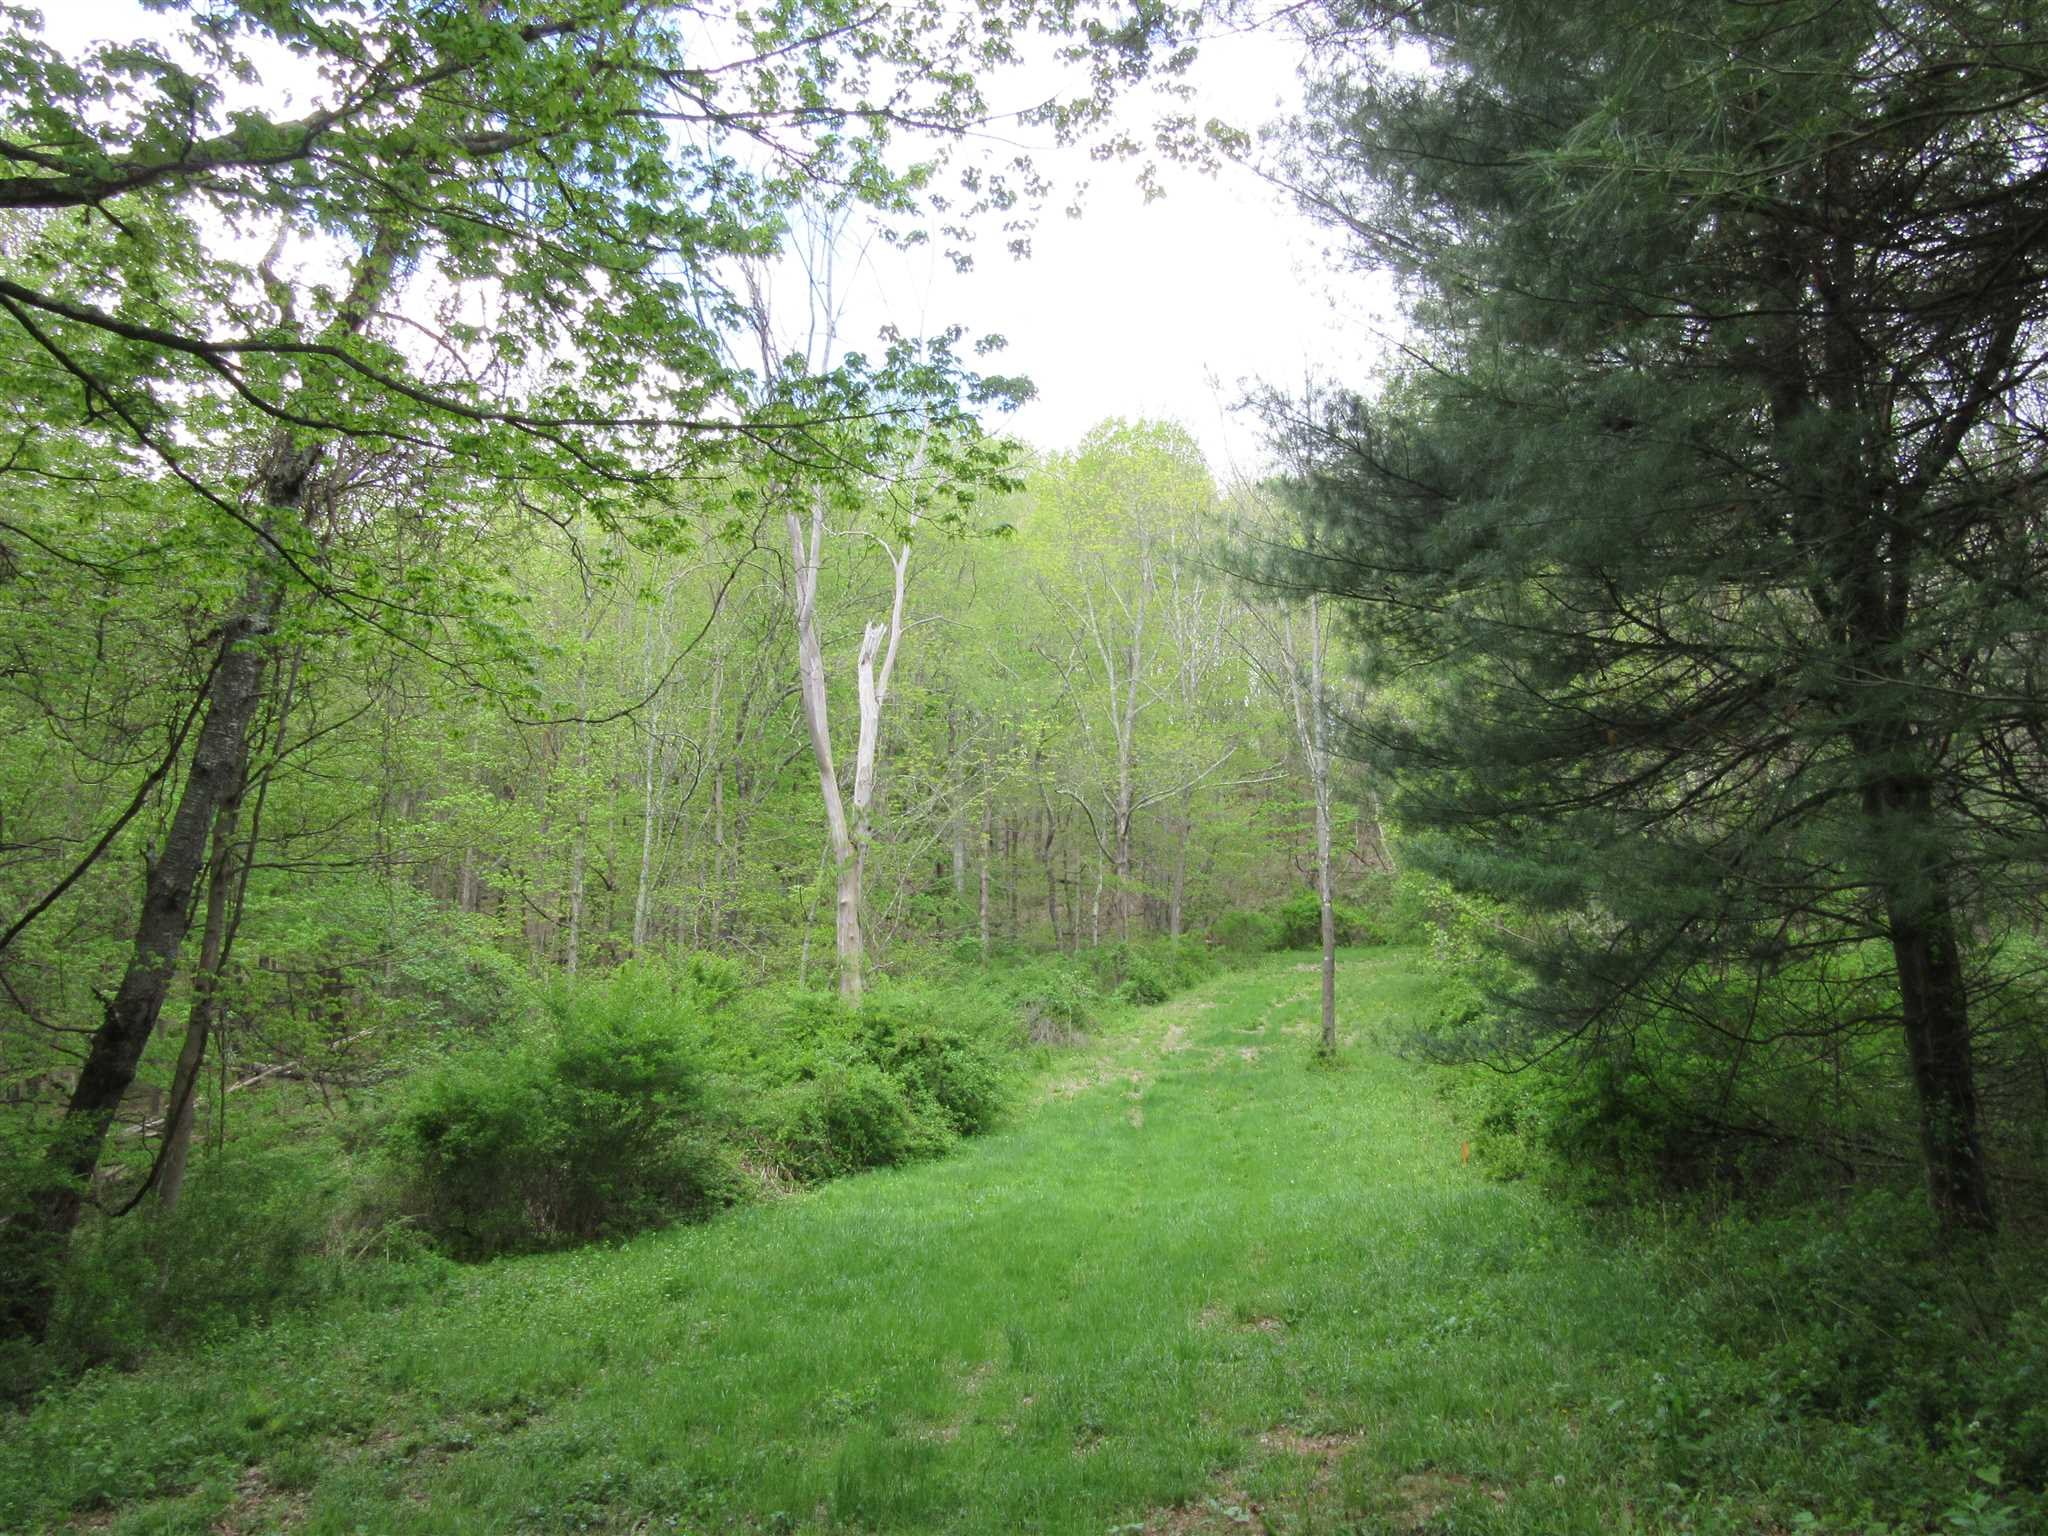 Land for Sale at 4993 ROUTE 22 LOT 1 4993 ROUTE 22 LOT 1 Amenia, New York 12501 United States